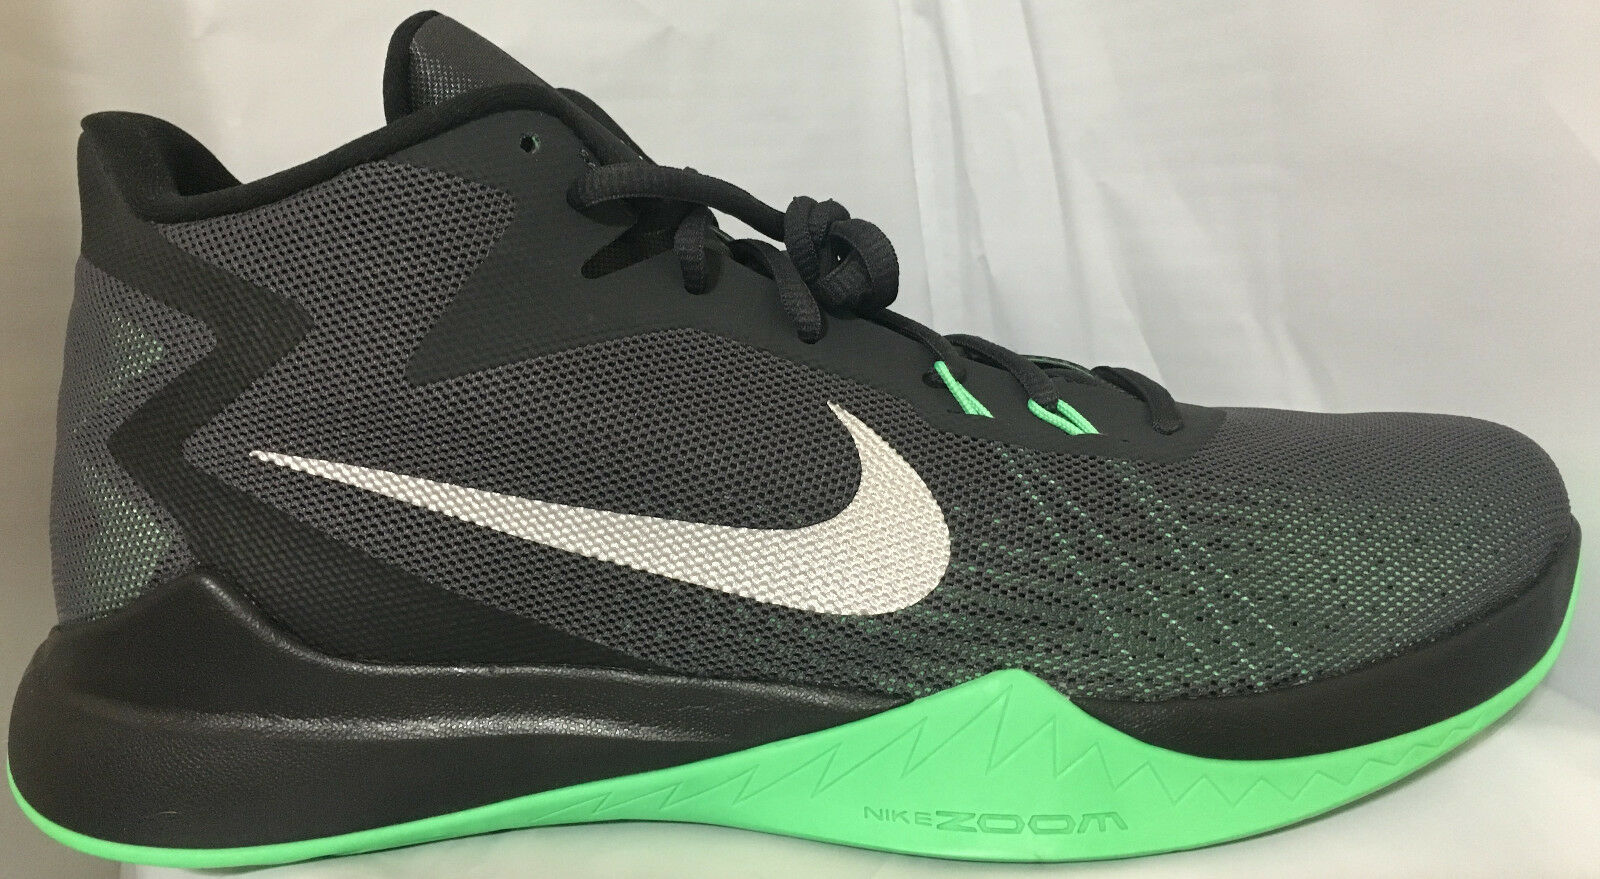 NIB NIKE 852464 003 ZOOM EVIDENCE Uomo COOL ANTHRACITE/GRN BASKETBALL SHOES  90